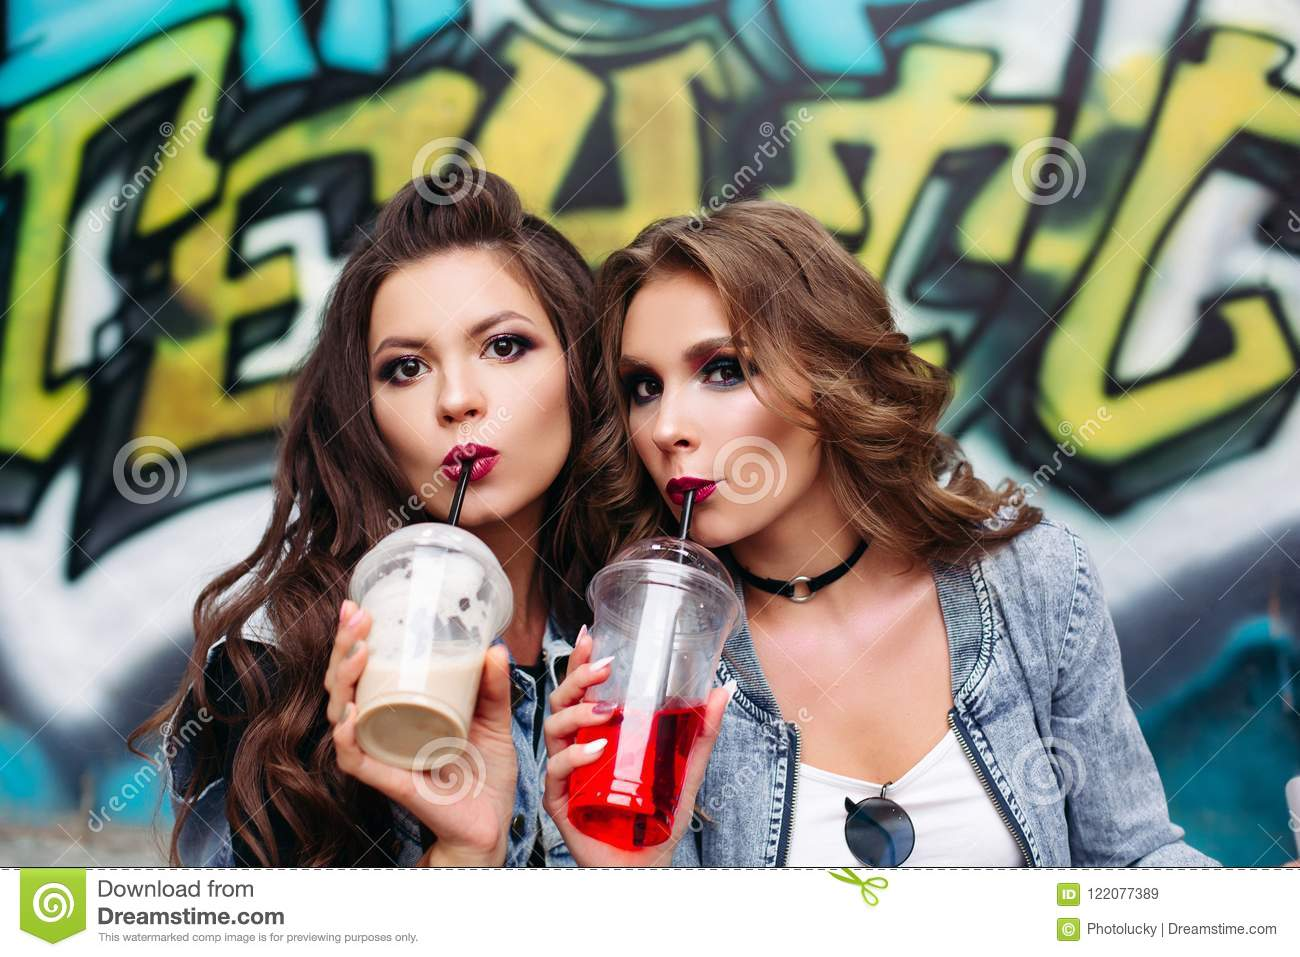 6743cff803400 Pretty teen girls with make up and hairstyle drinking takeaway lemonade  over graffiti.